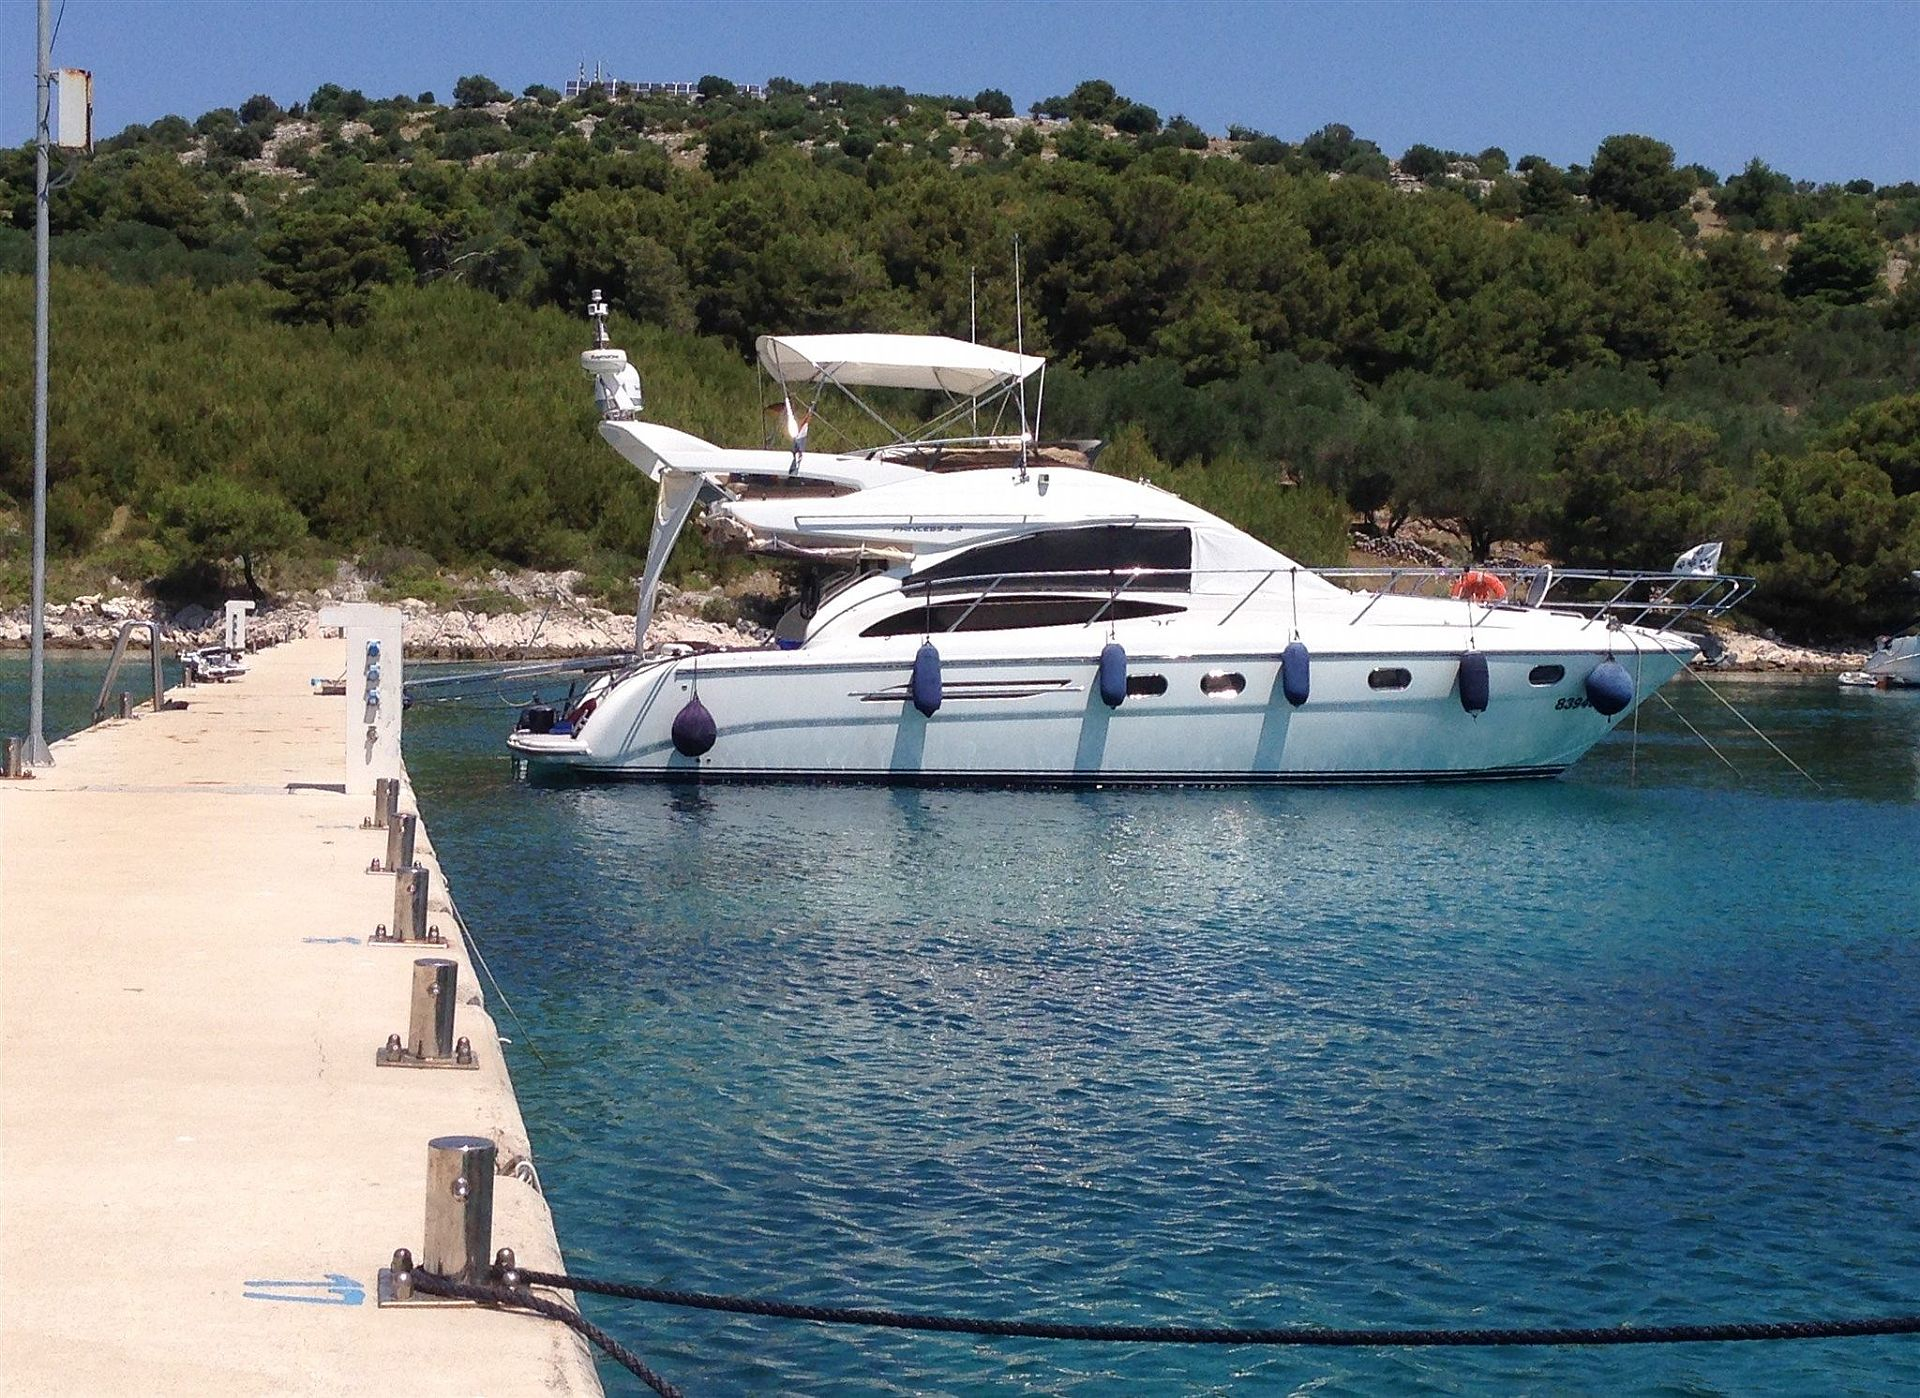 Marine Project PRINCESS 42 FLY2004 for sale: 228000.-EUR